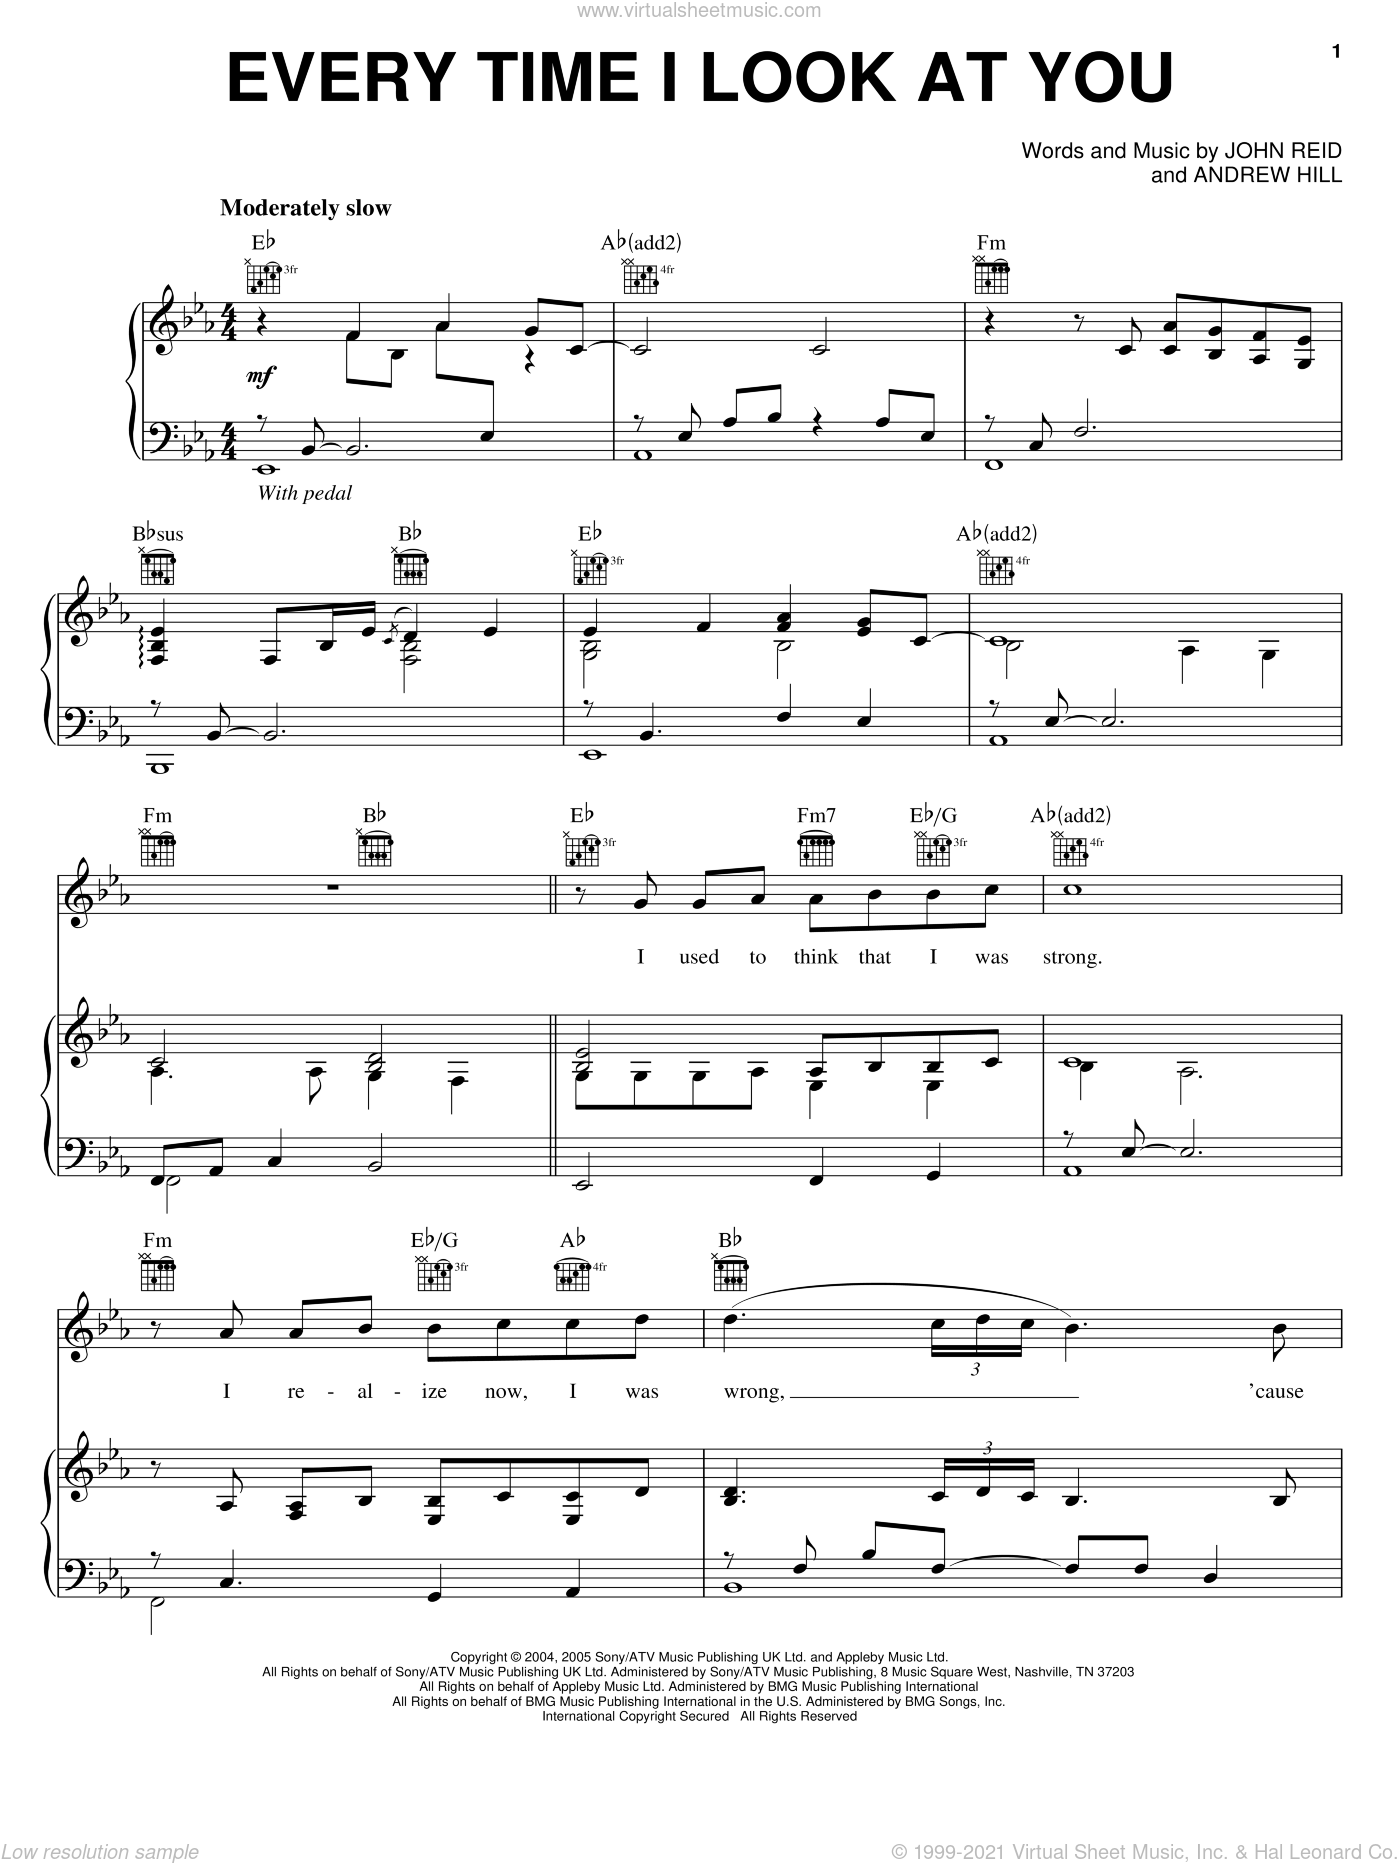 Every Time I Look At You sheet music for voice, piano or guitar by John Reid and Il Divo. Score Image Preview.